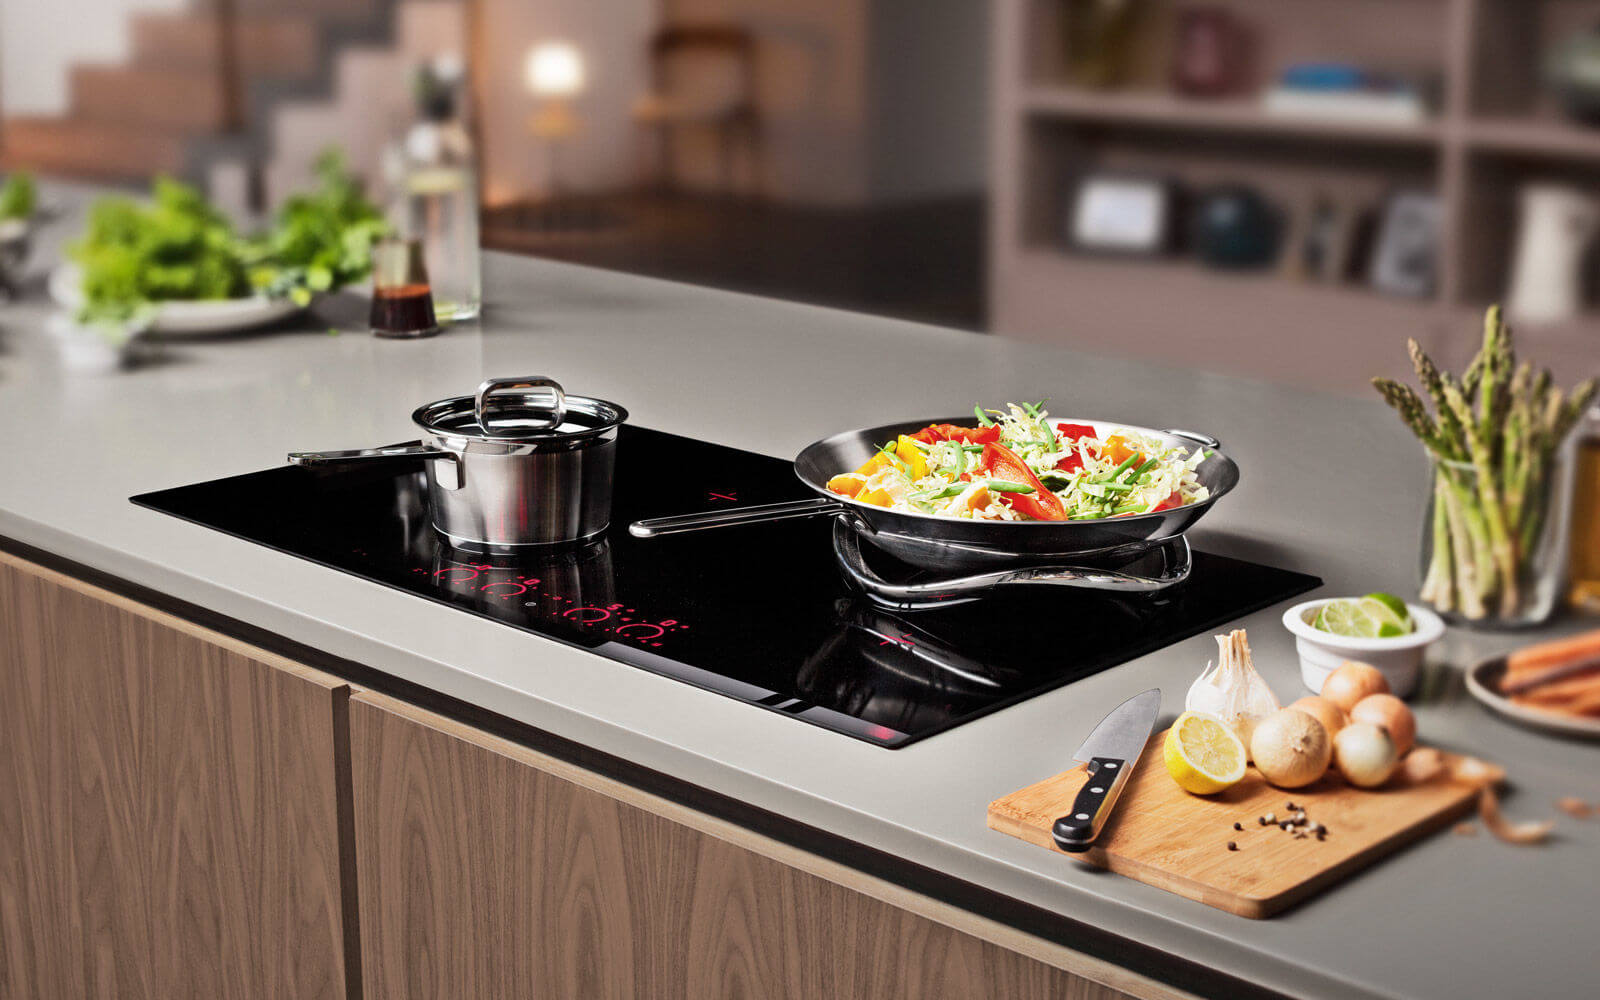 Which cookware to use with induction cookers?